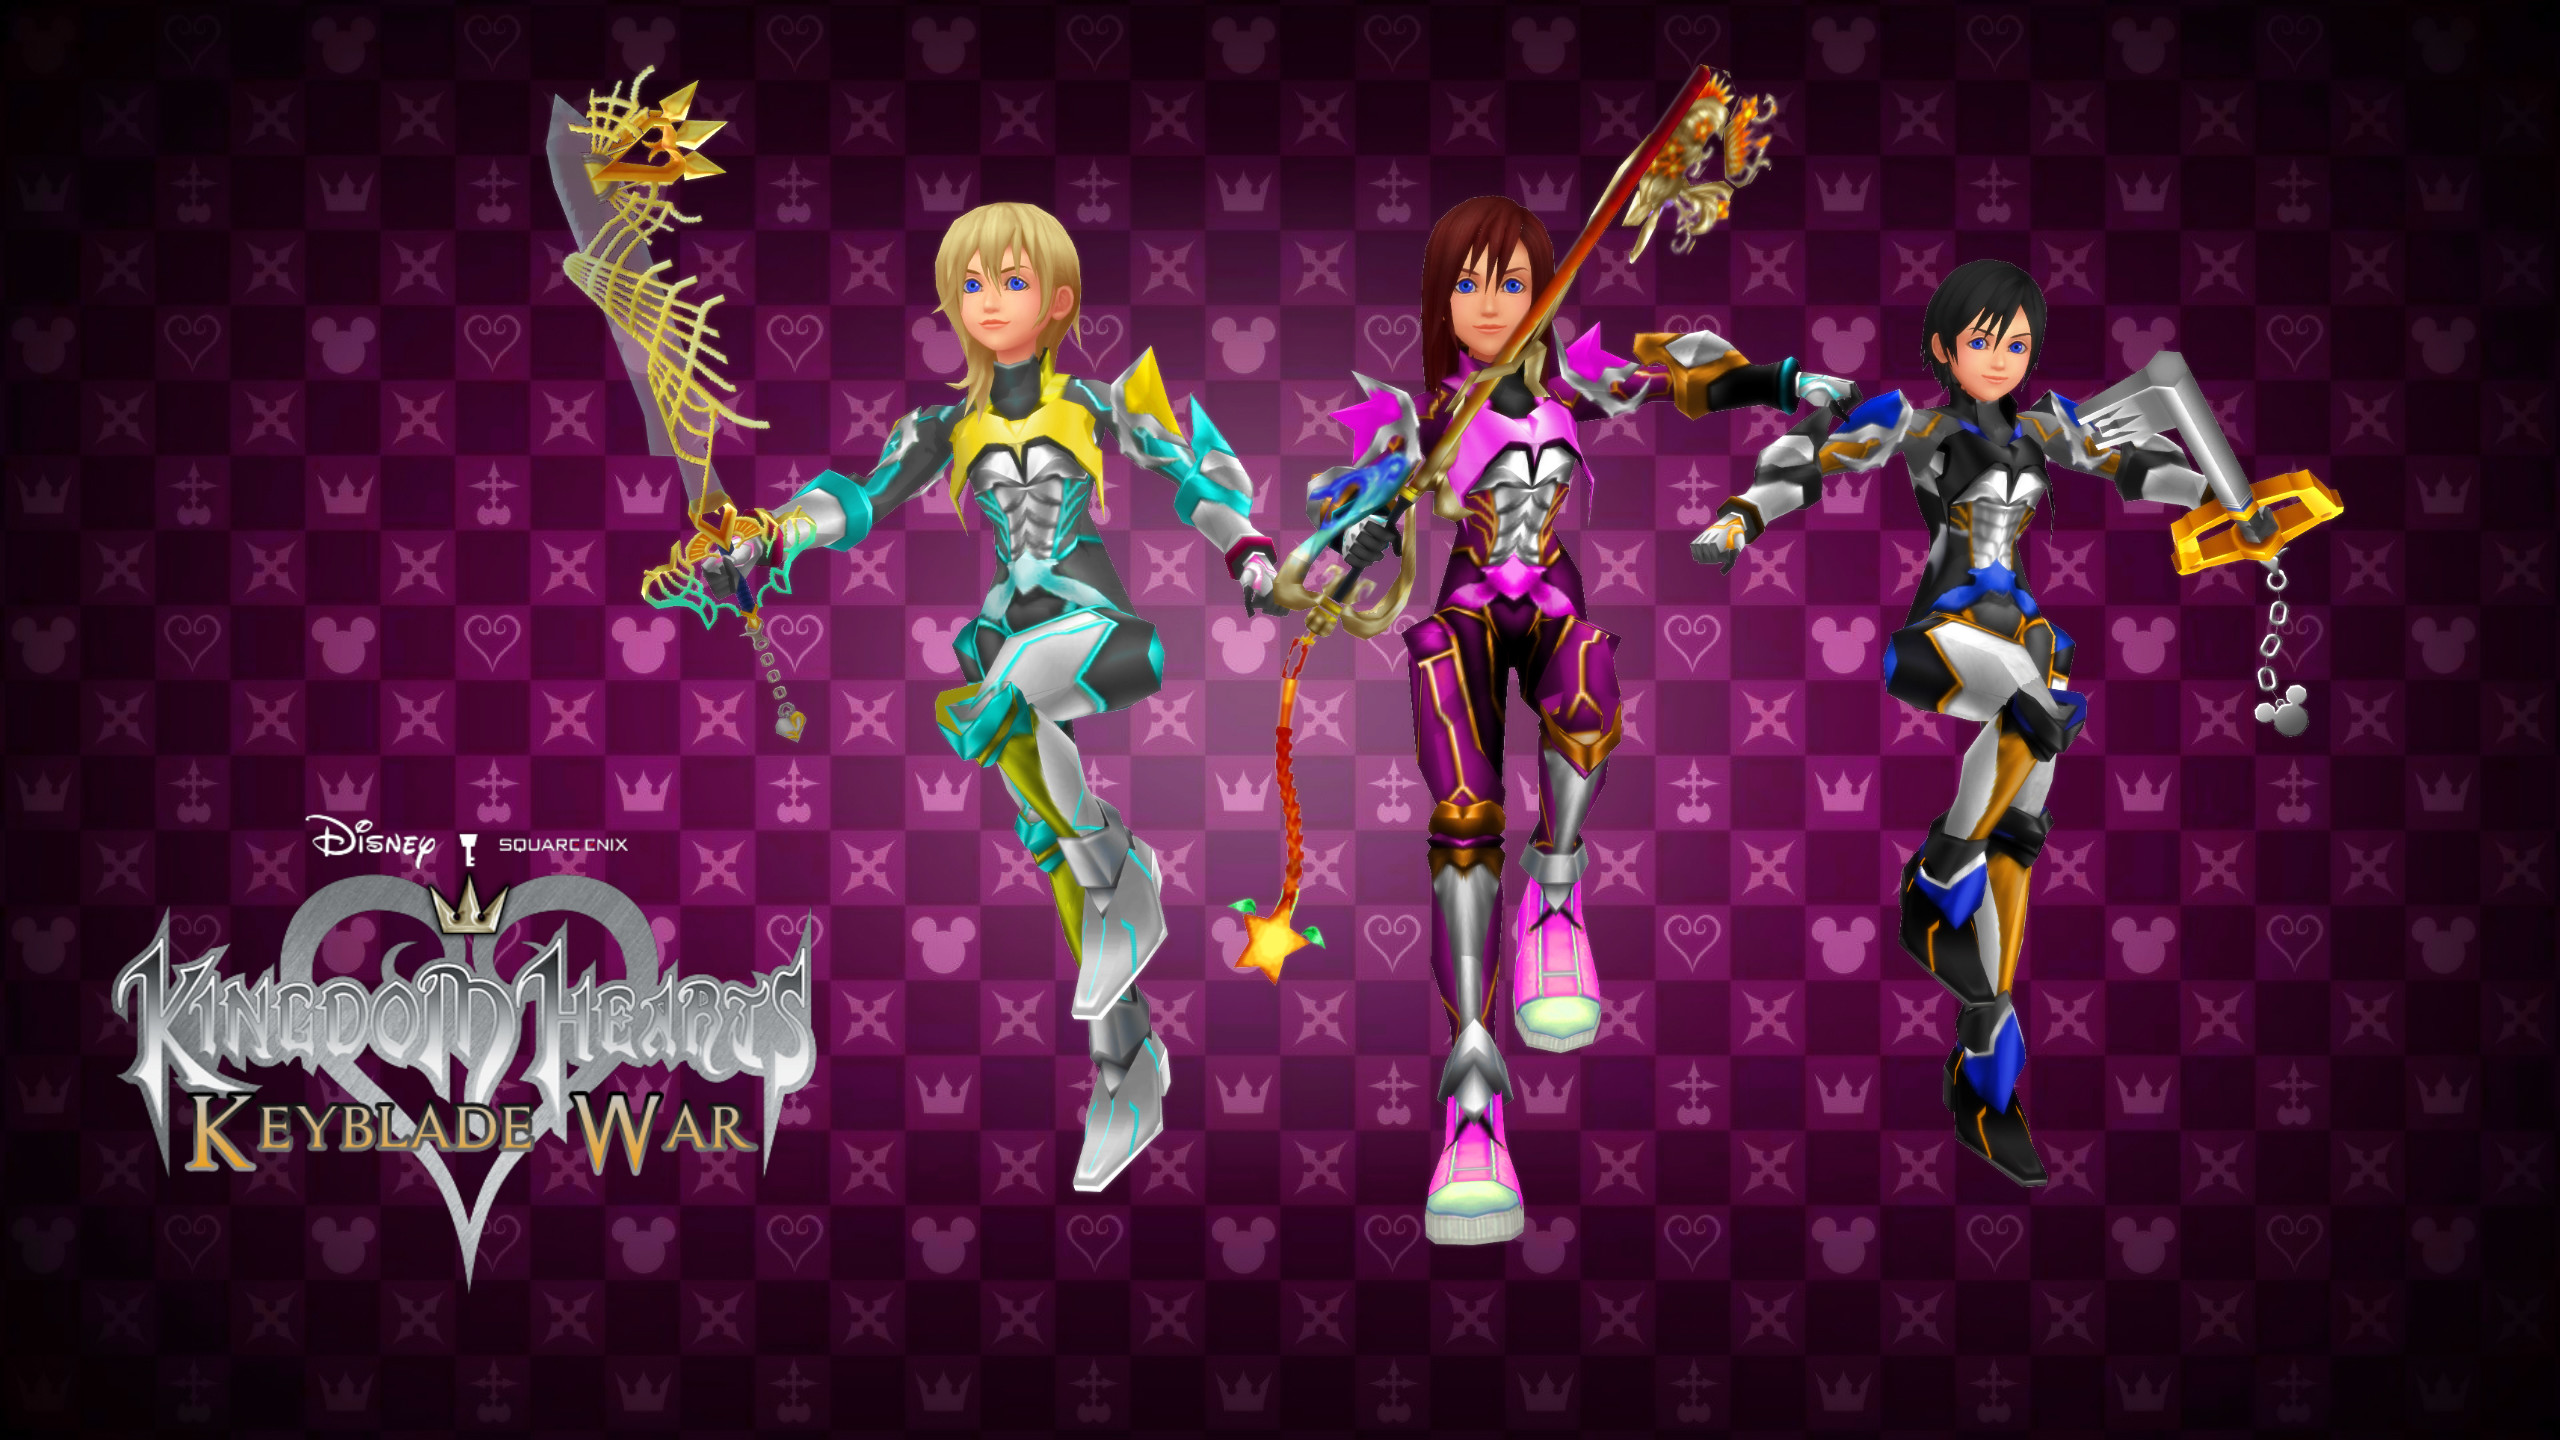 2560x1440 Kingdom Hearts Keyblade War Custom Wallpaper 03 by todsen19 on .